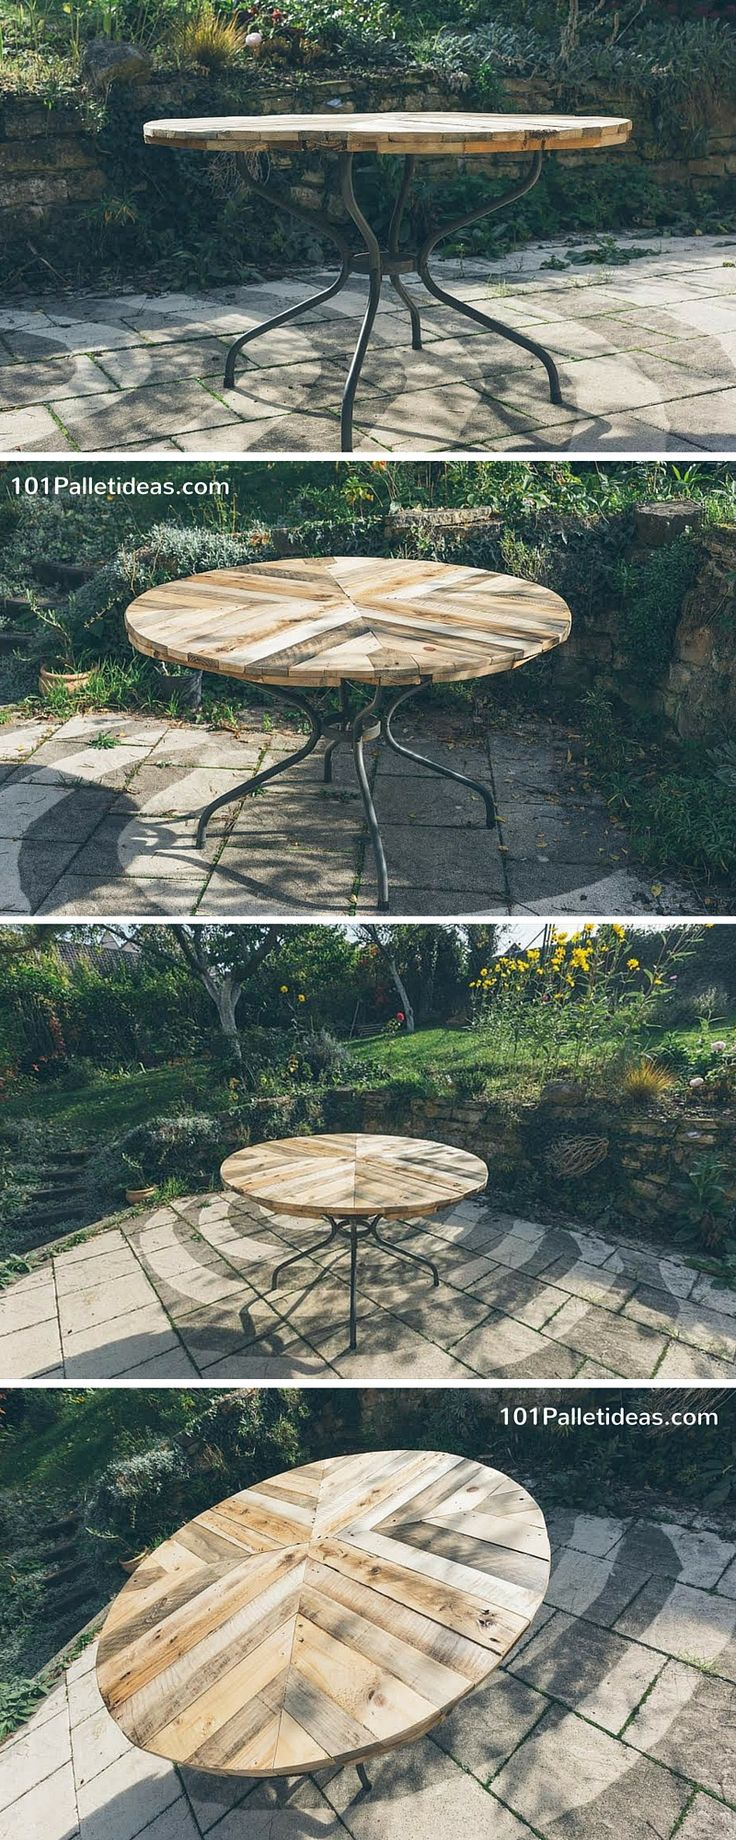 Round Top Table Made of Pallets - #DIY - 101 Pallet Ideas